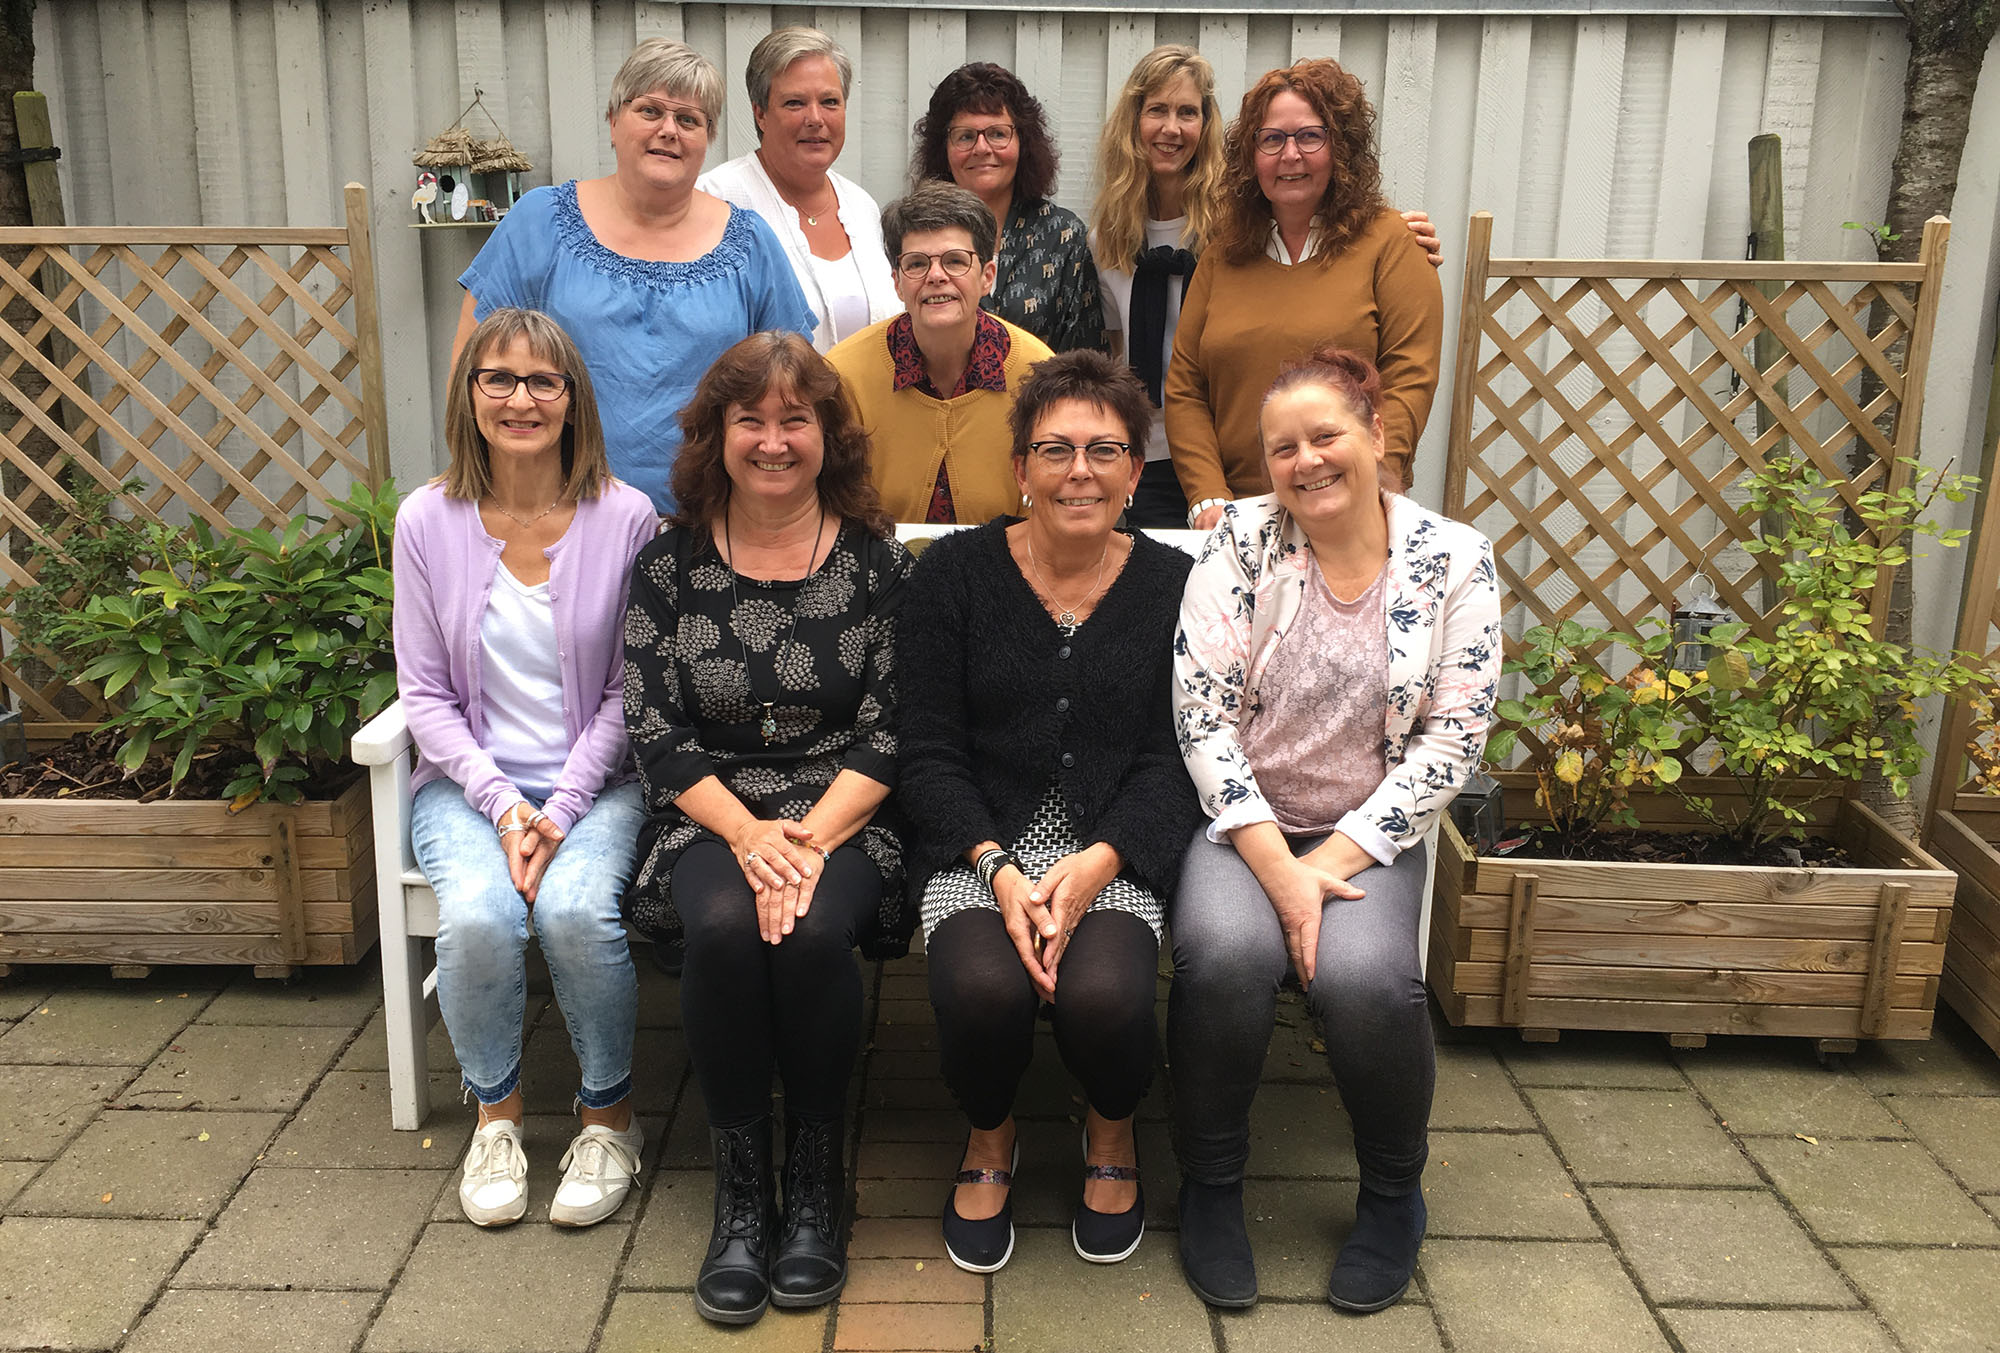 Welcome to the Danish Fibromyalgia Association! We have many dedicated members all of over Denmark! Here's a photo of some of them!